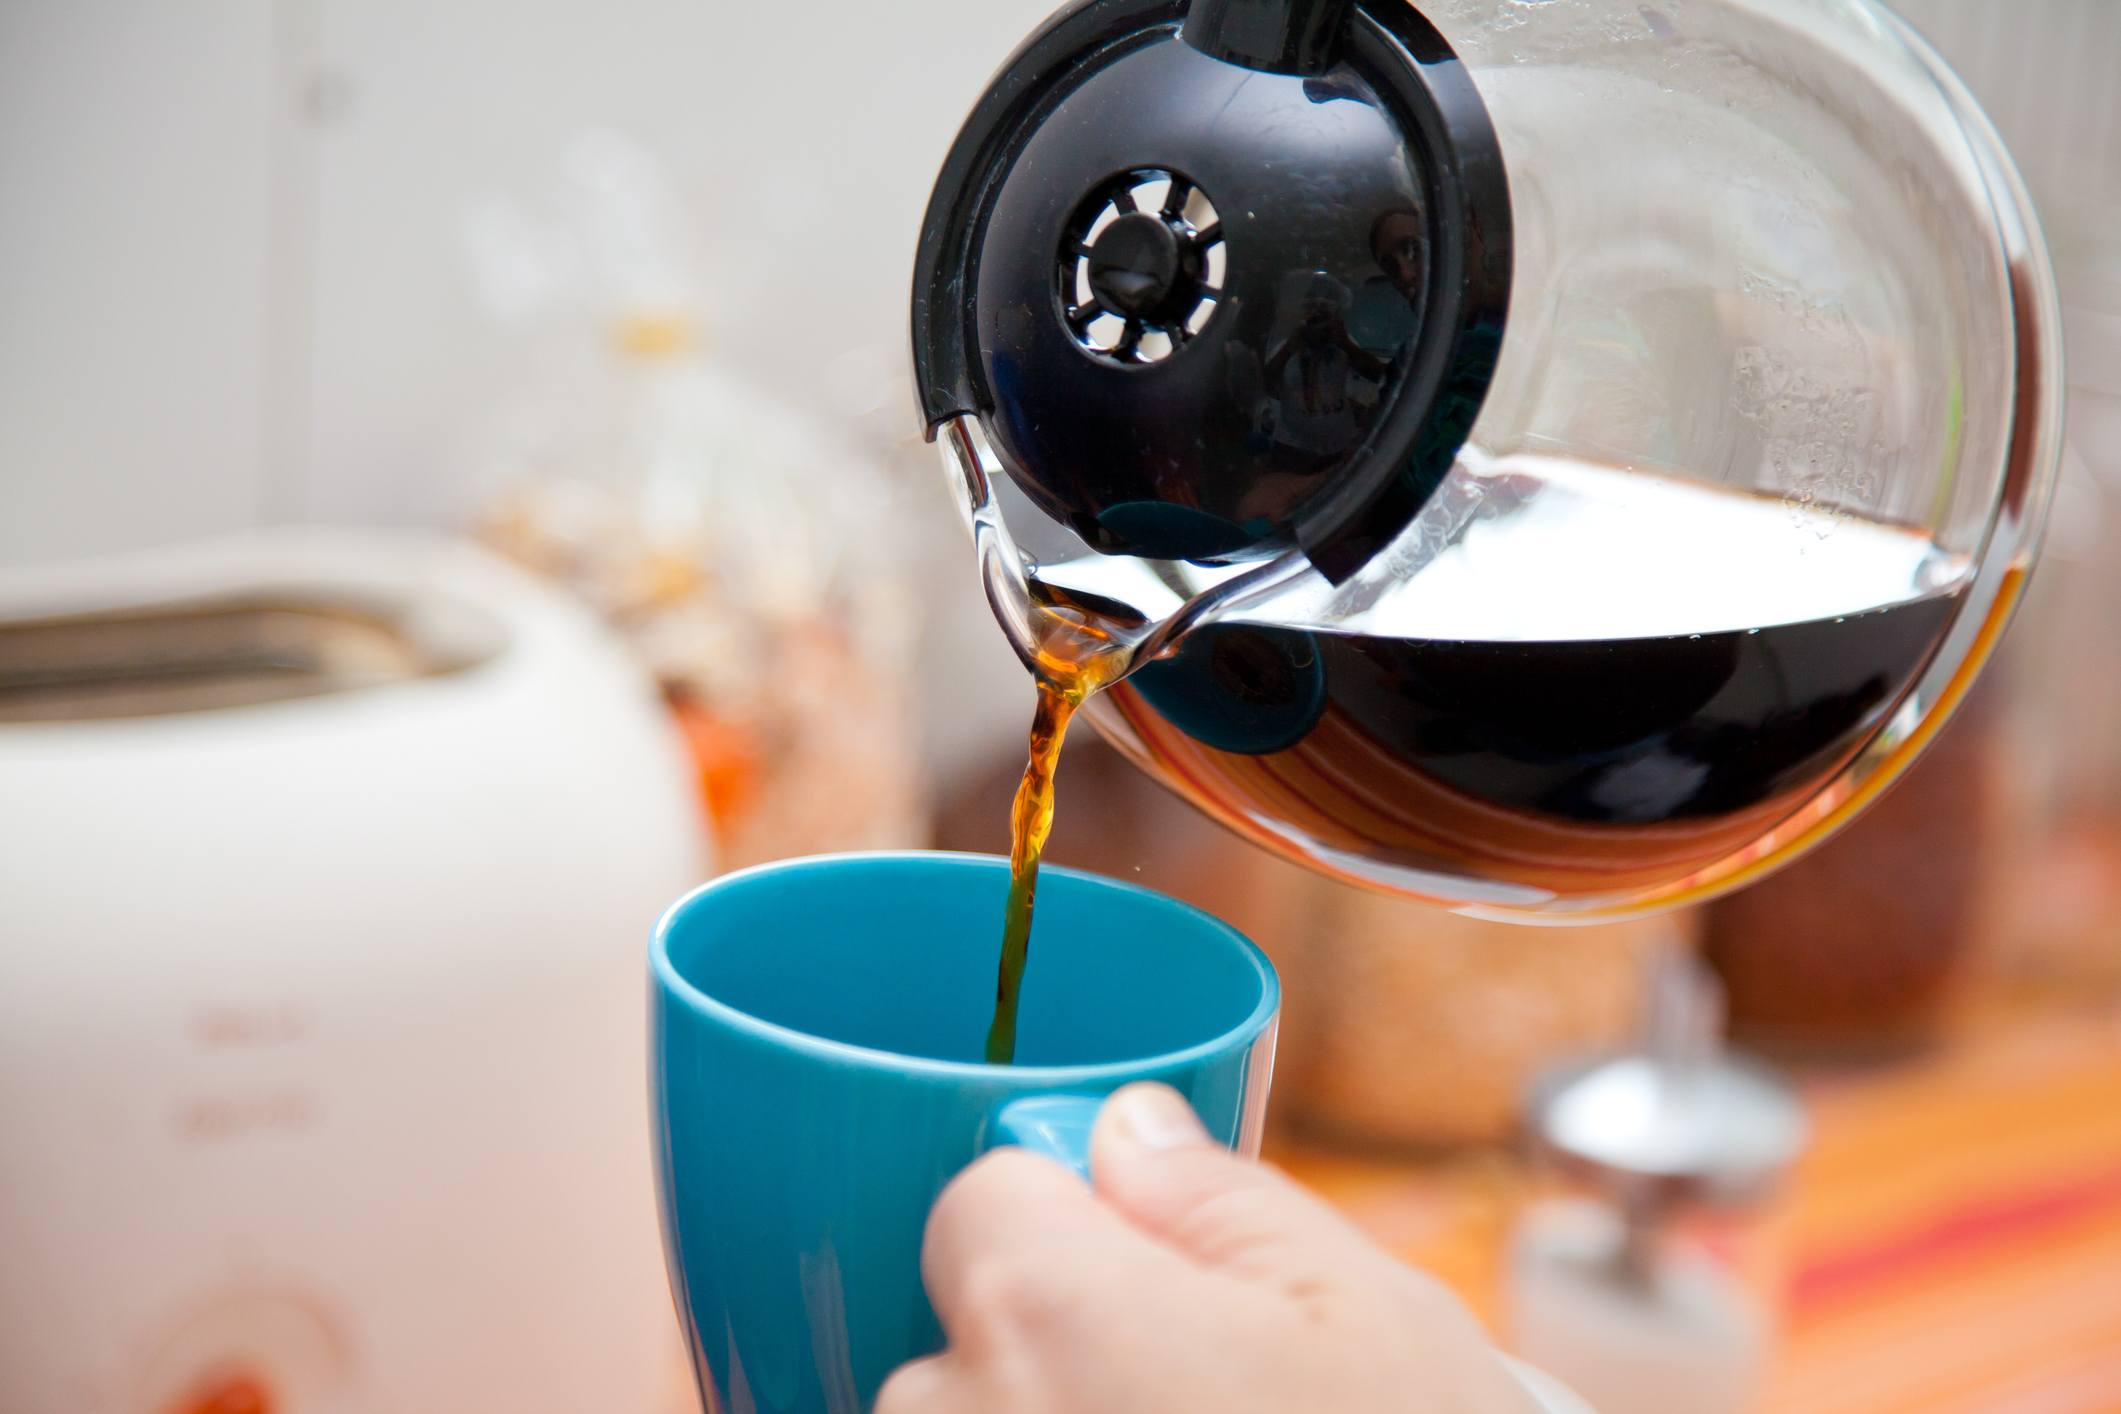 A person pours coffee from the pot.